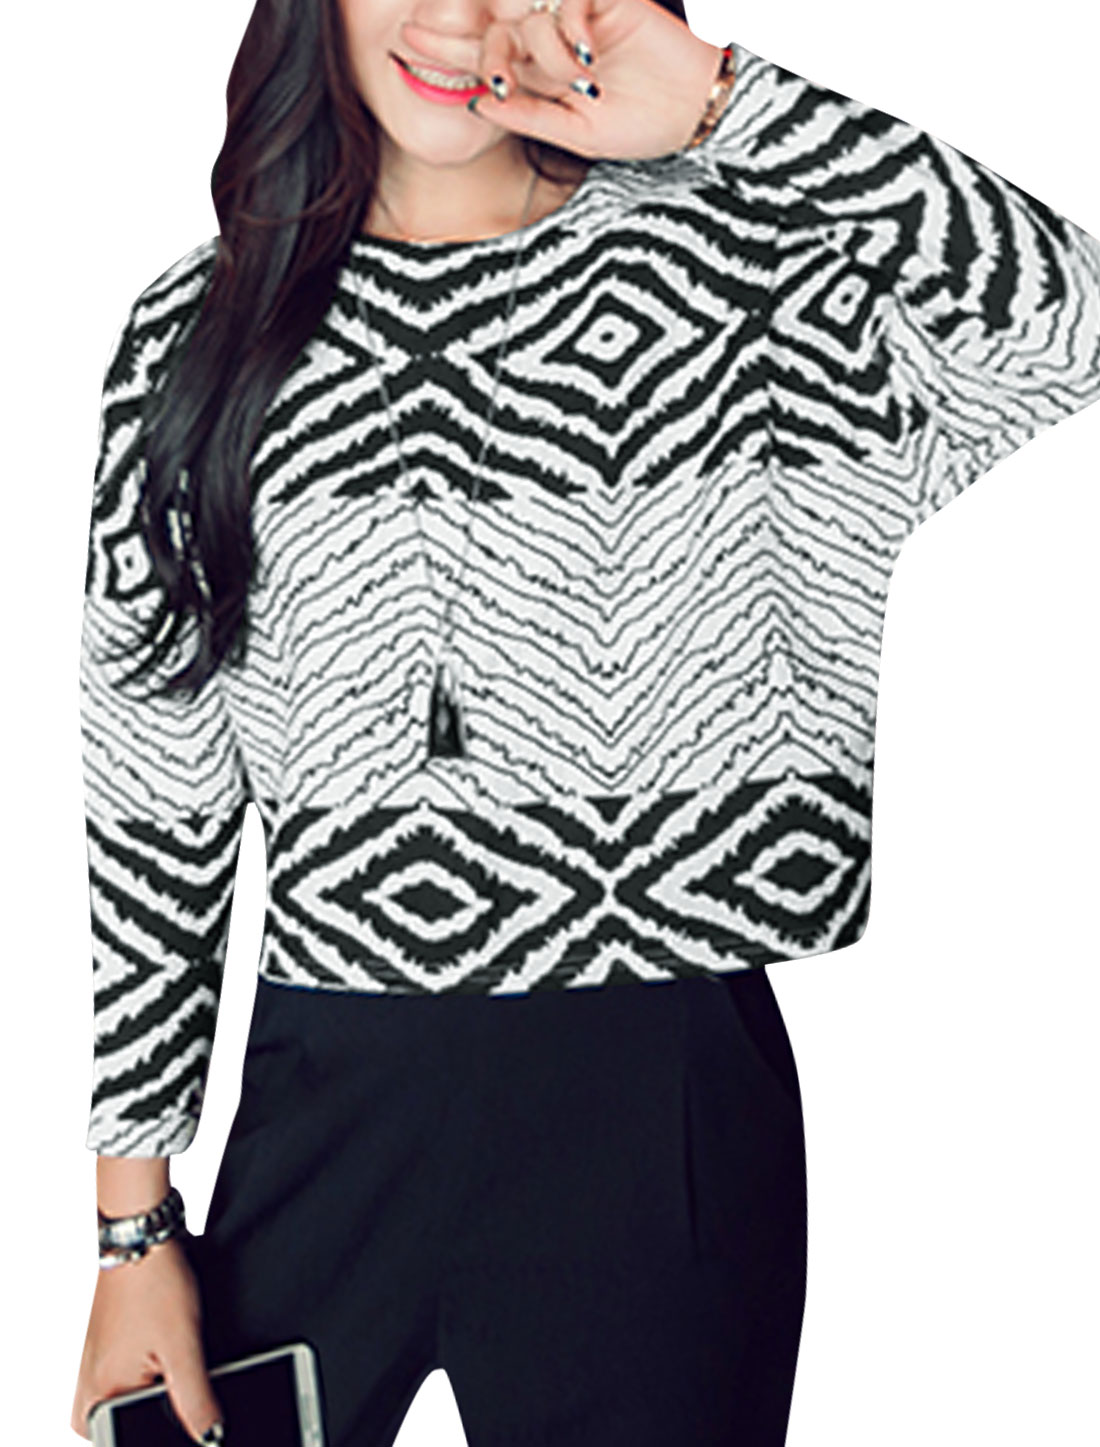 Women Argyle Zig-Zag Pattern Hidden Zipper Back Casual Top Black White XS